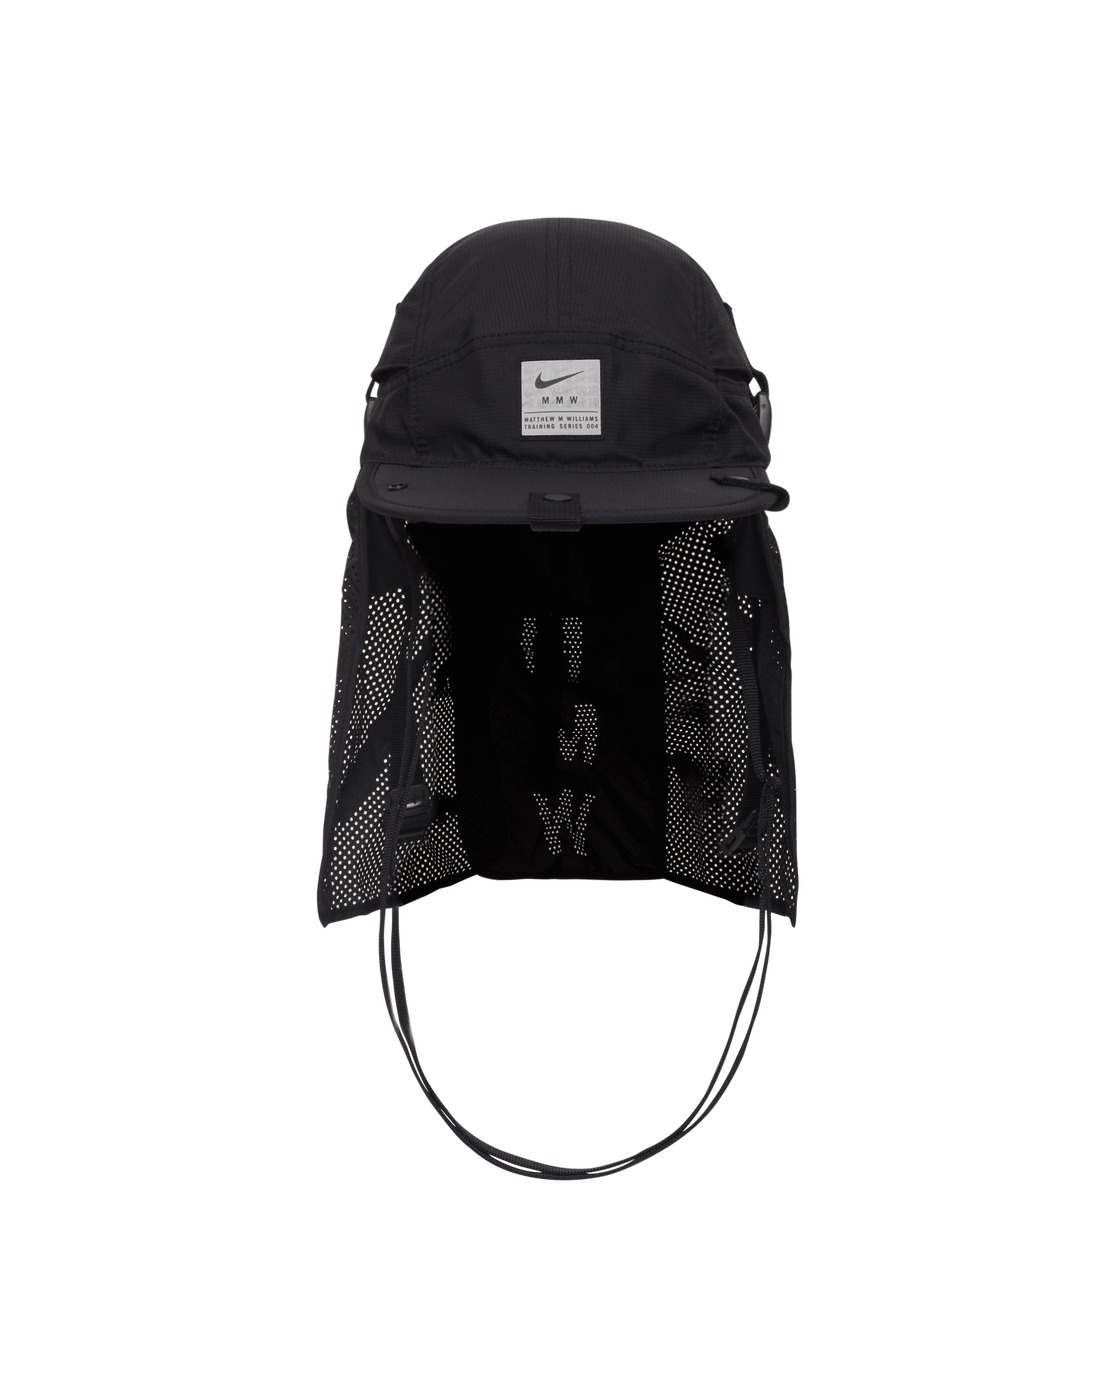 Photo: Nike Special Project Mmw Nrg Aw84 Cap Black